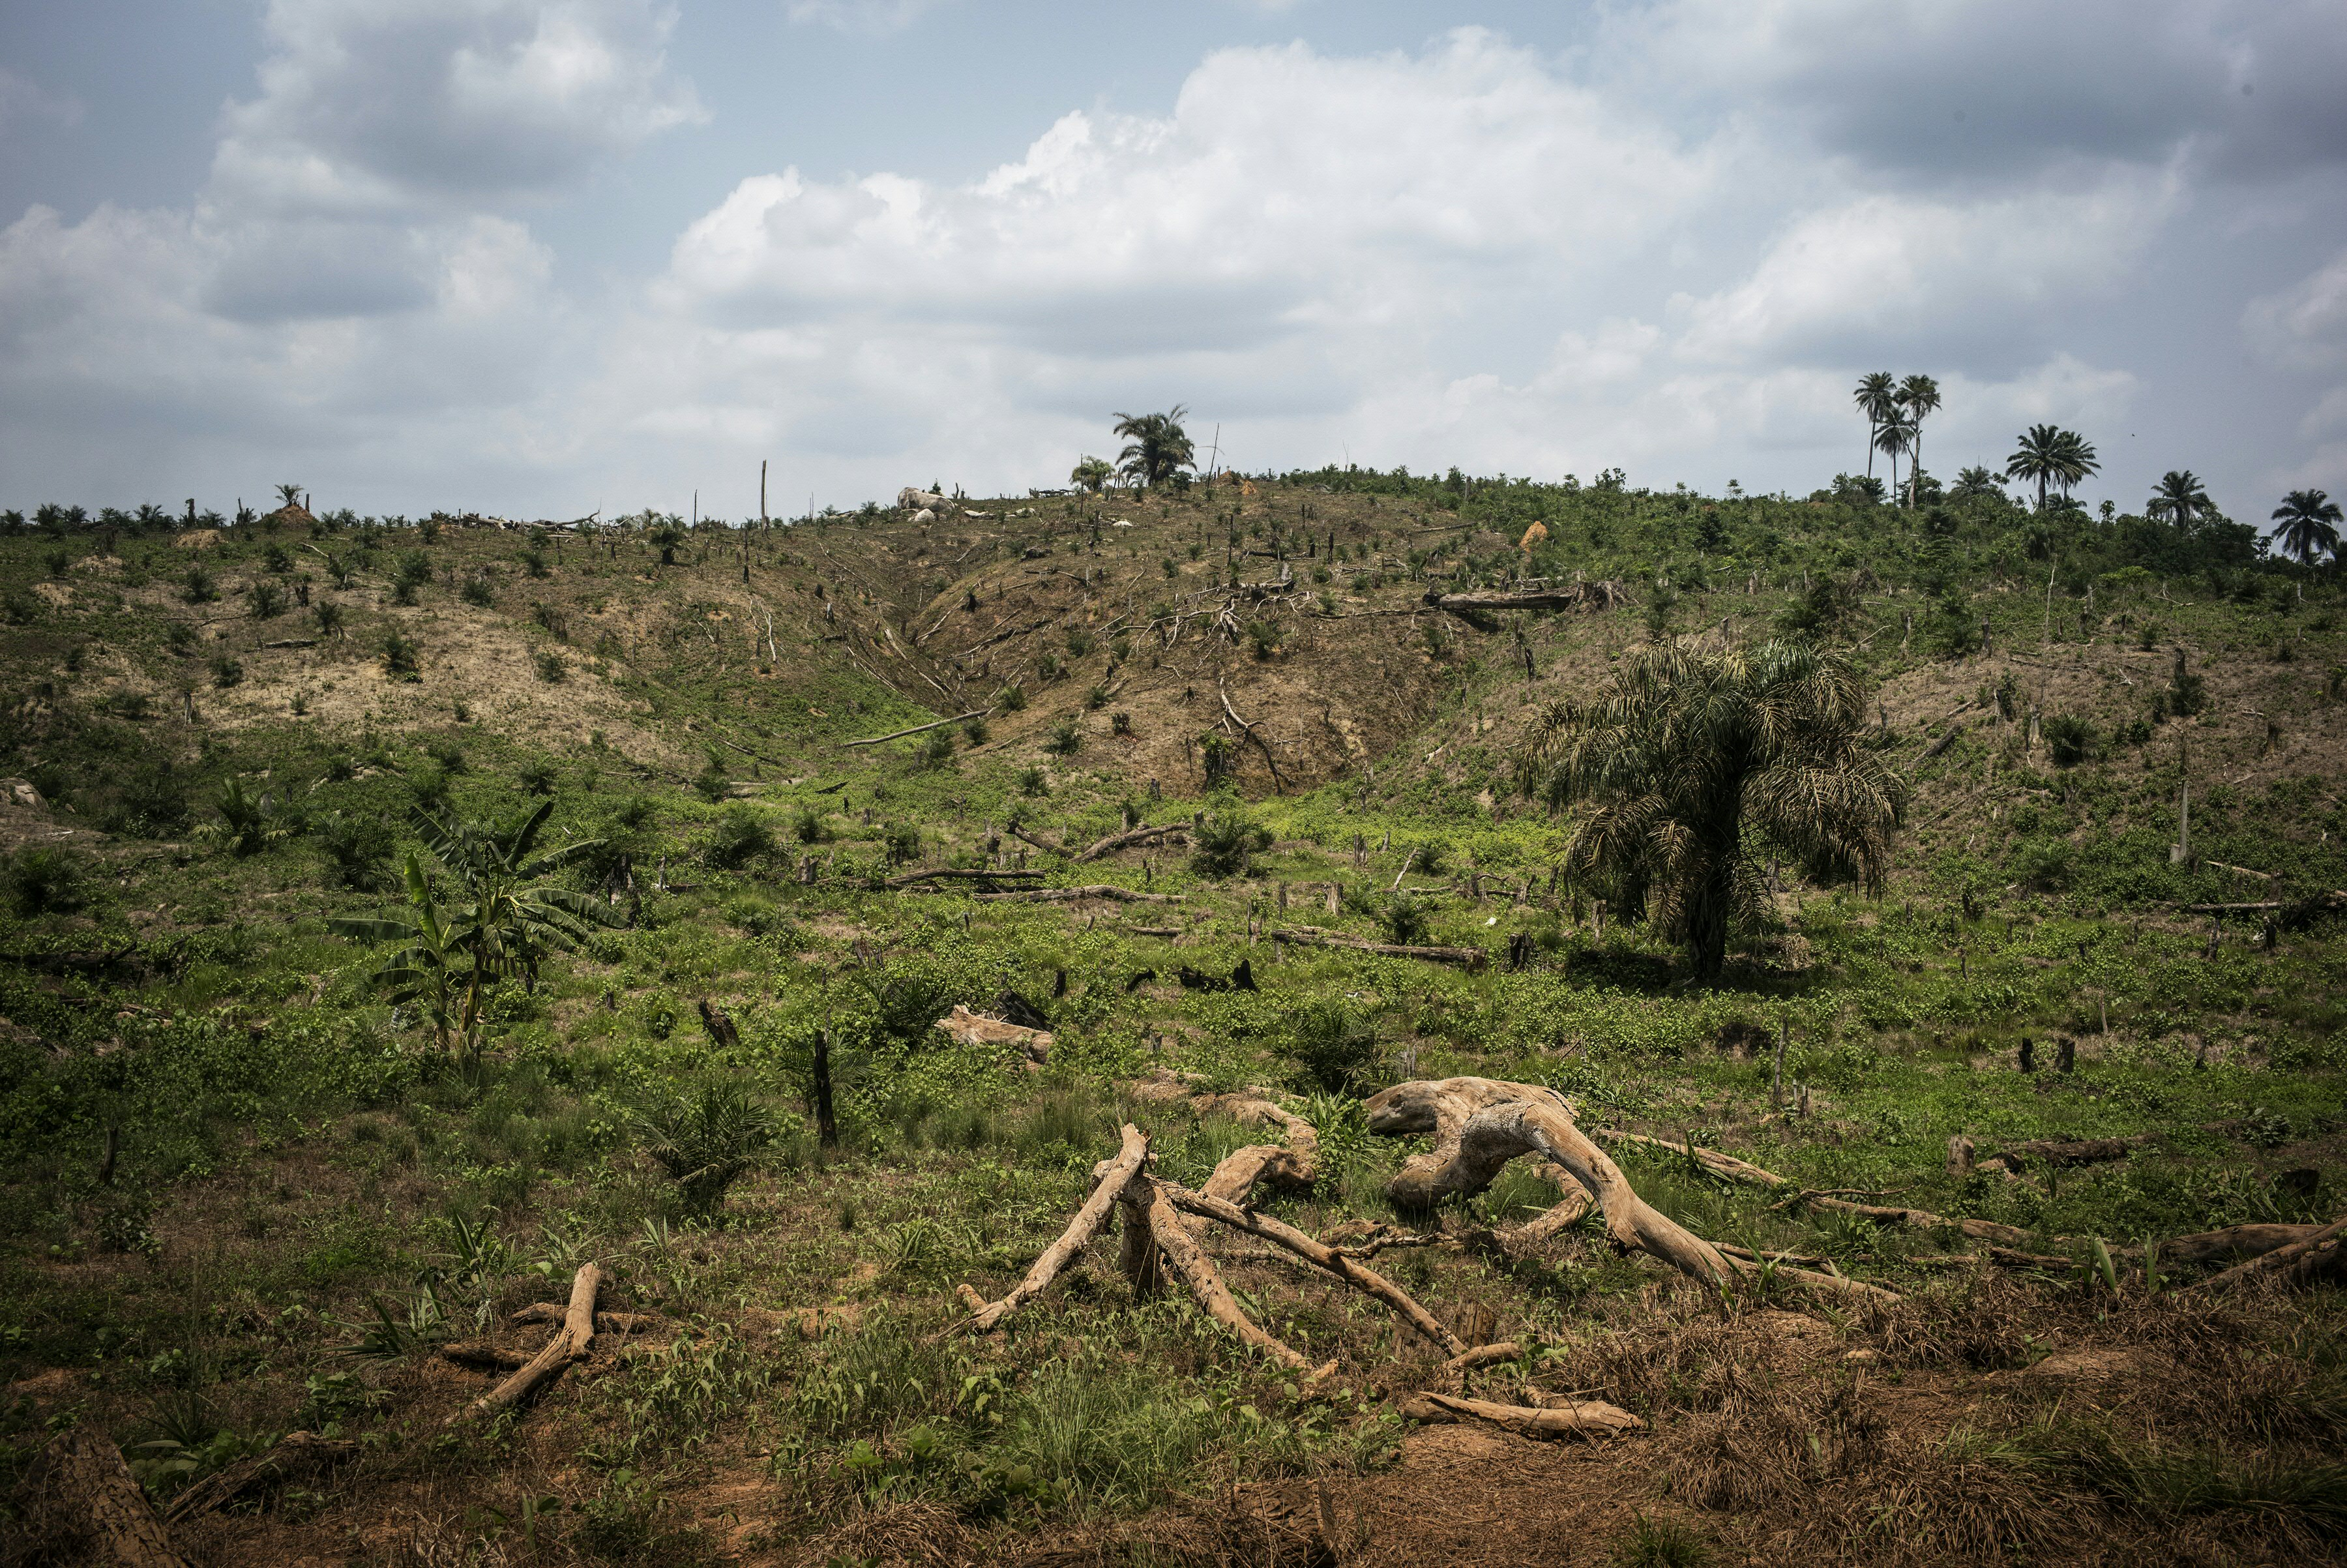 A picture taken on April 28, 2016 shows broken trees due to the intense deforestation intended for land clearing for palm oil production in Lofa county, northern Liberia